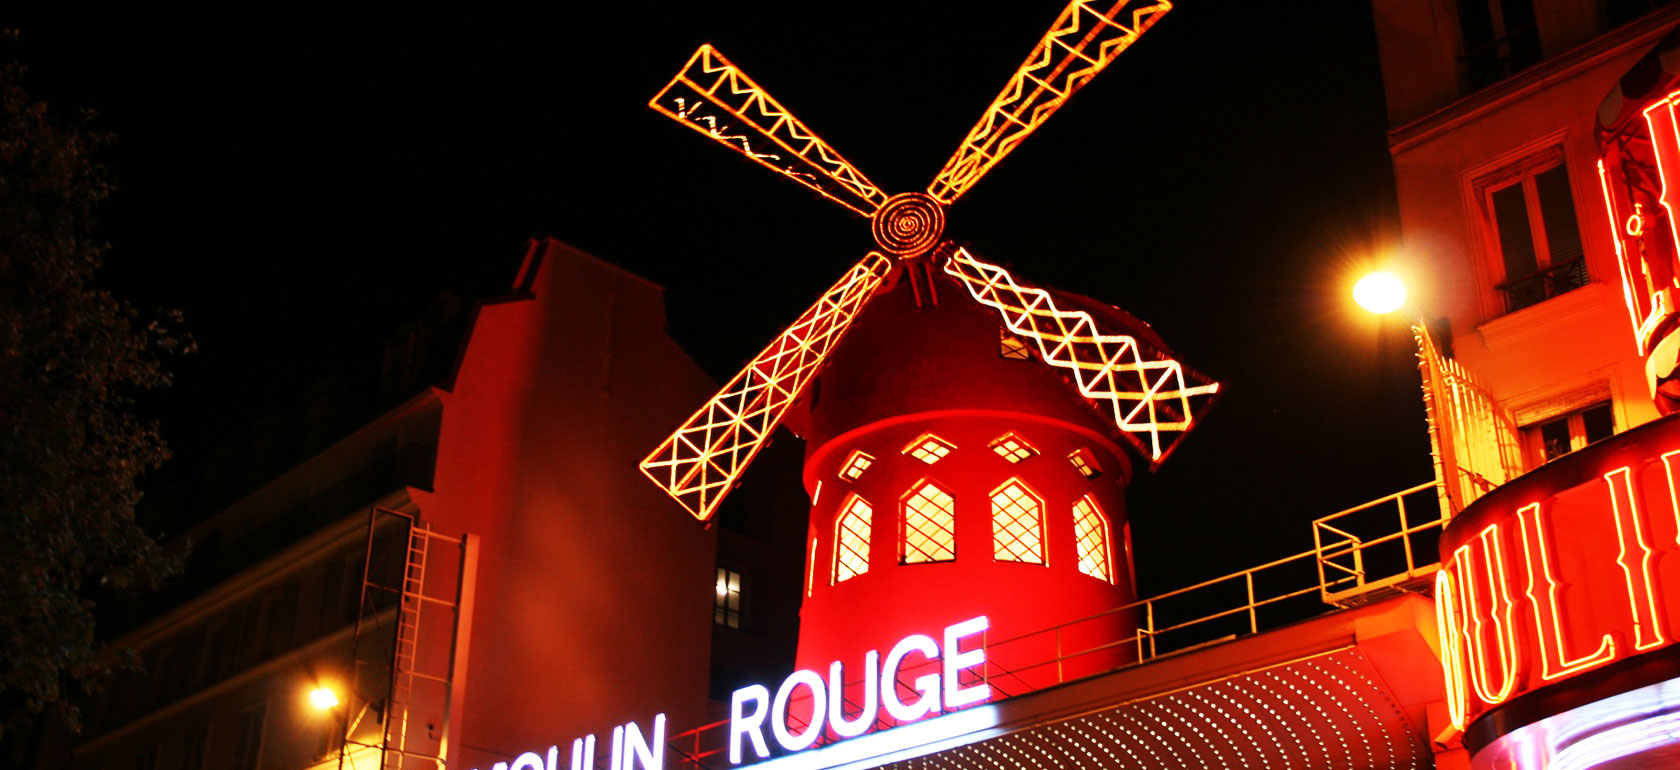 Buy discount tickets and offers for Moulin Rouge online, prices start at £ United Moulin Rouge Tickets Paris. From. £ More Info. You can buy Moulin Rouge tickets for the cabaret plus dinner and 1/2 bottle champagne, or just for one of the two shows. Early booking with Tickets is recommended as the show regularly sells 5/5(3).